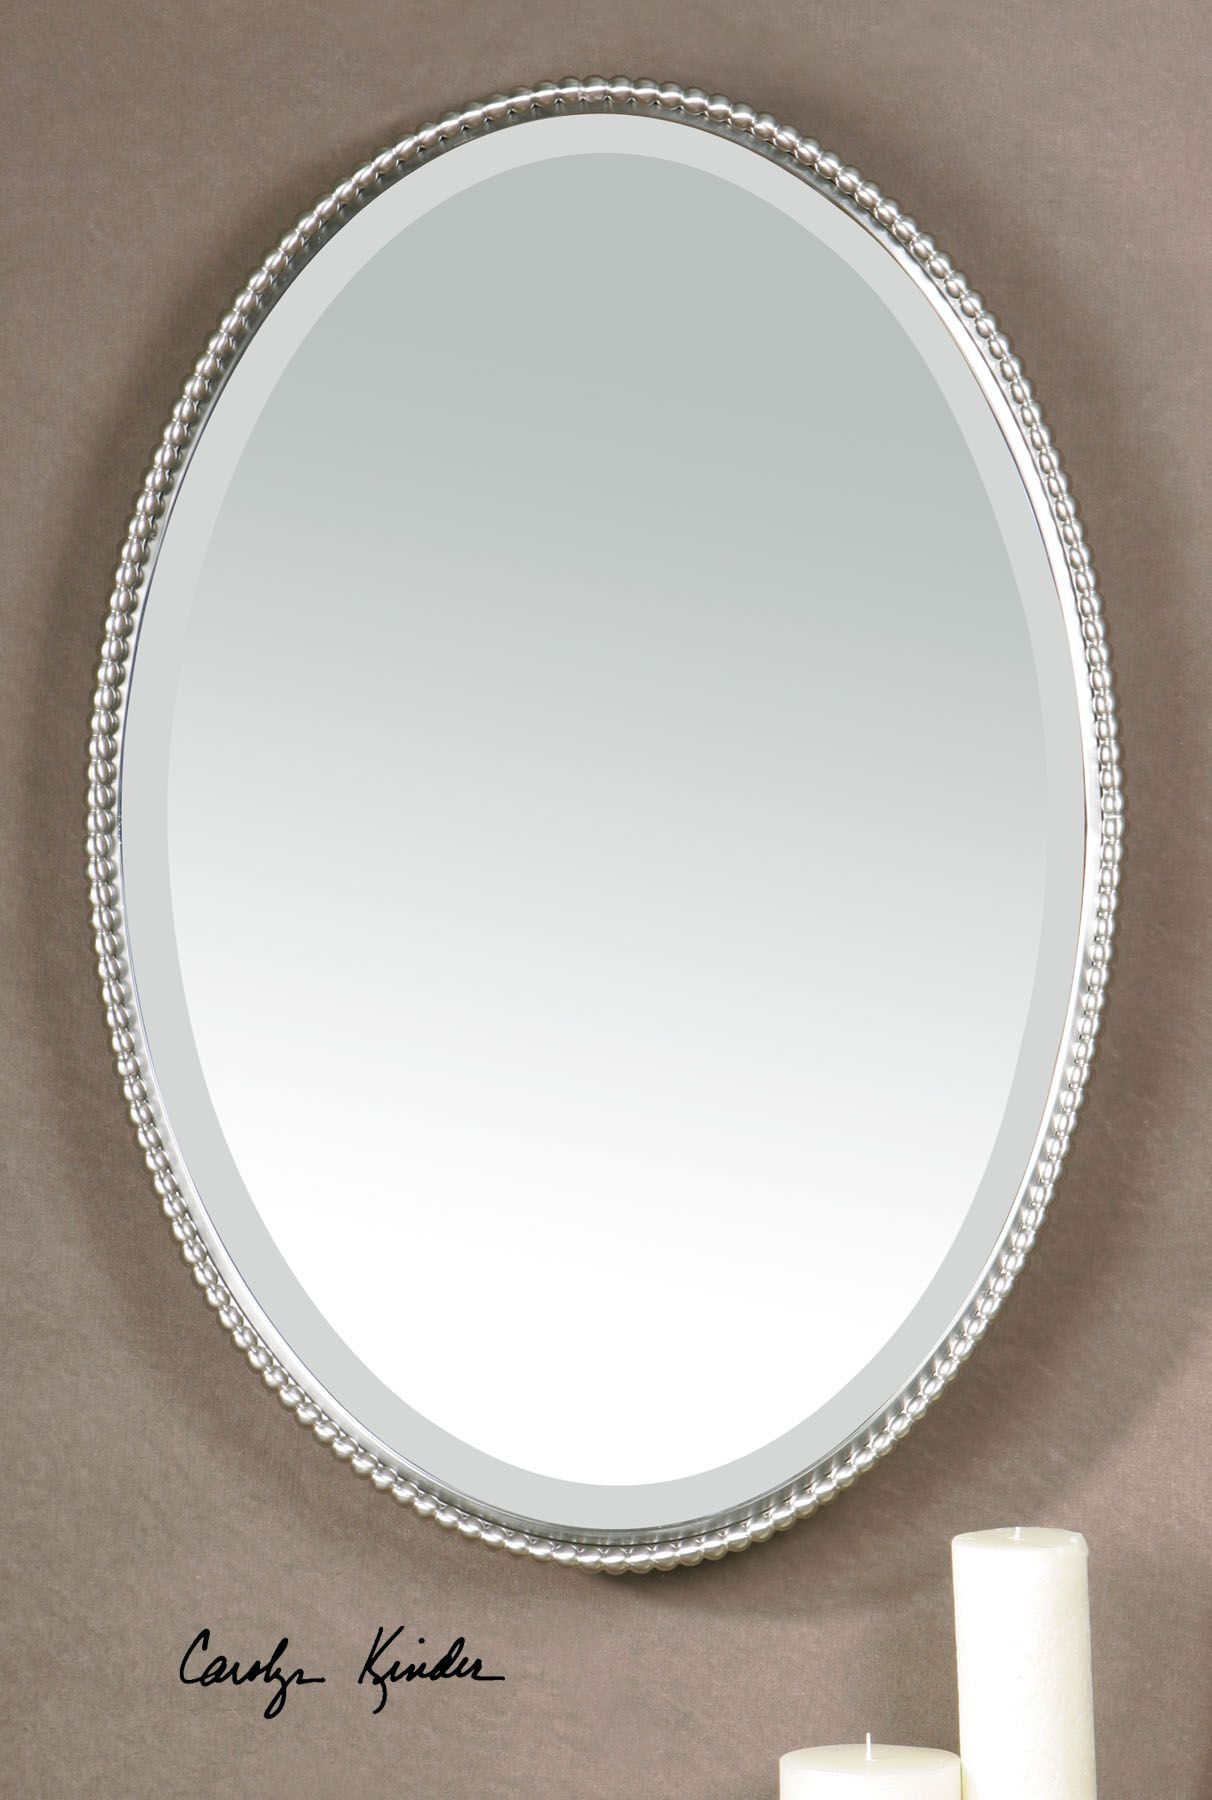 Tilting mirror bathroom mirrors waterworks more bathroom mirrors - Find This Pin And More On Decorative Mirrors By Sporegal0870